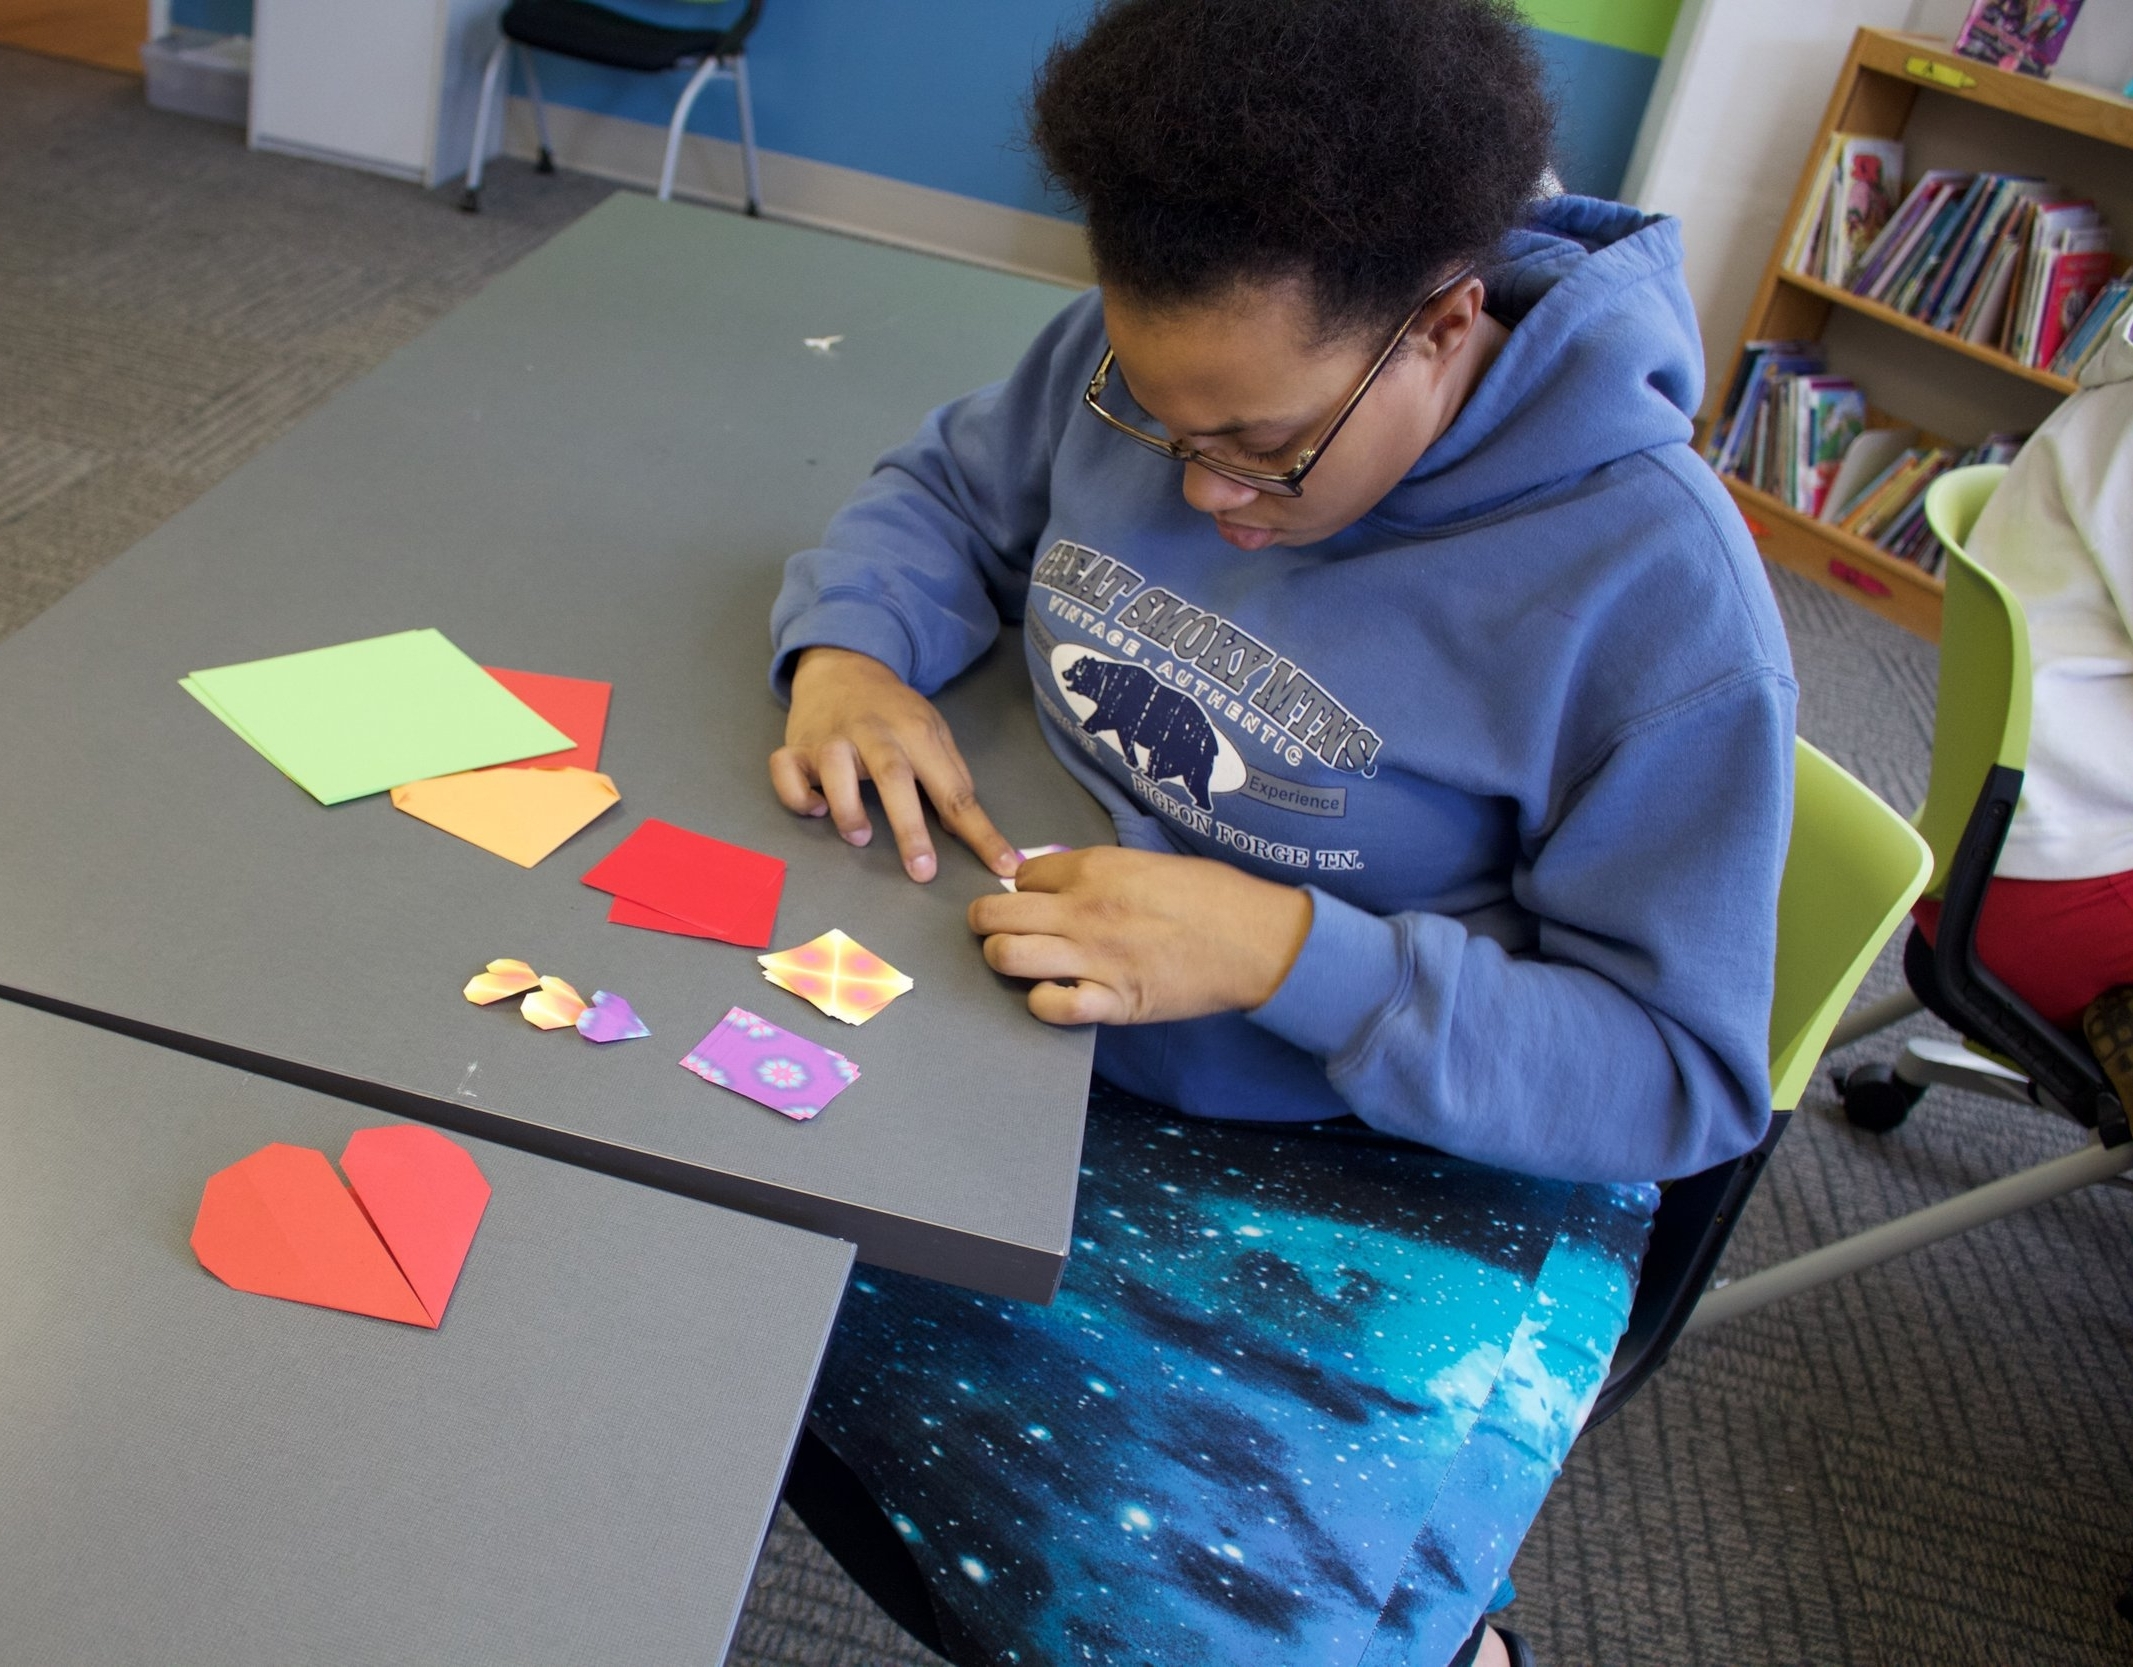 Family Care Center student making individual hearts for group project after KidsArt4Hearts lesson.